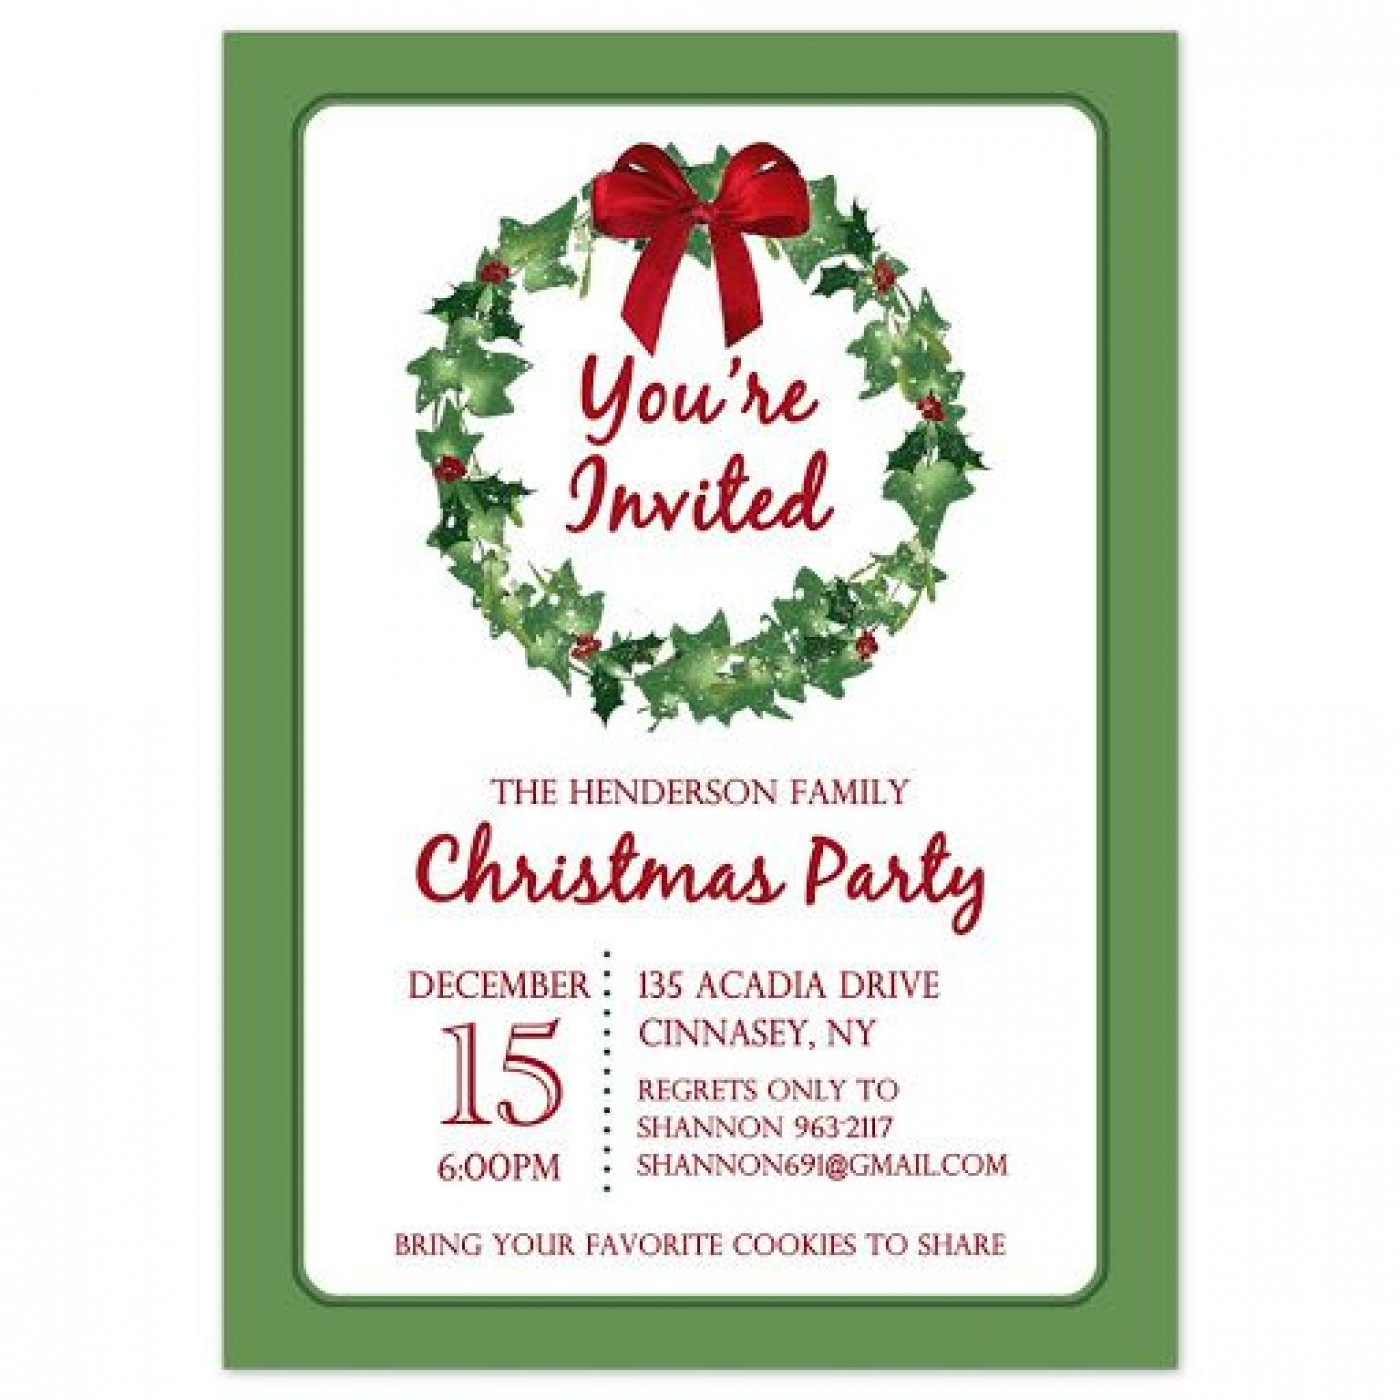 009 Stirring Holiday Party Invitation Template Free Inspiration  Elegant Christma Download Dinner Printable Australia1400